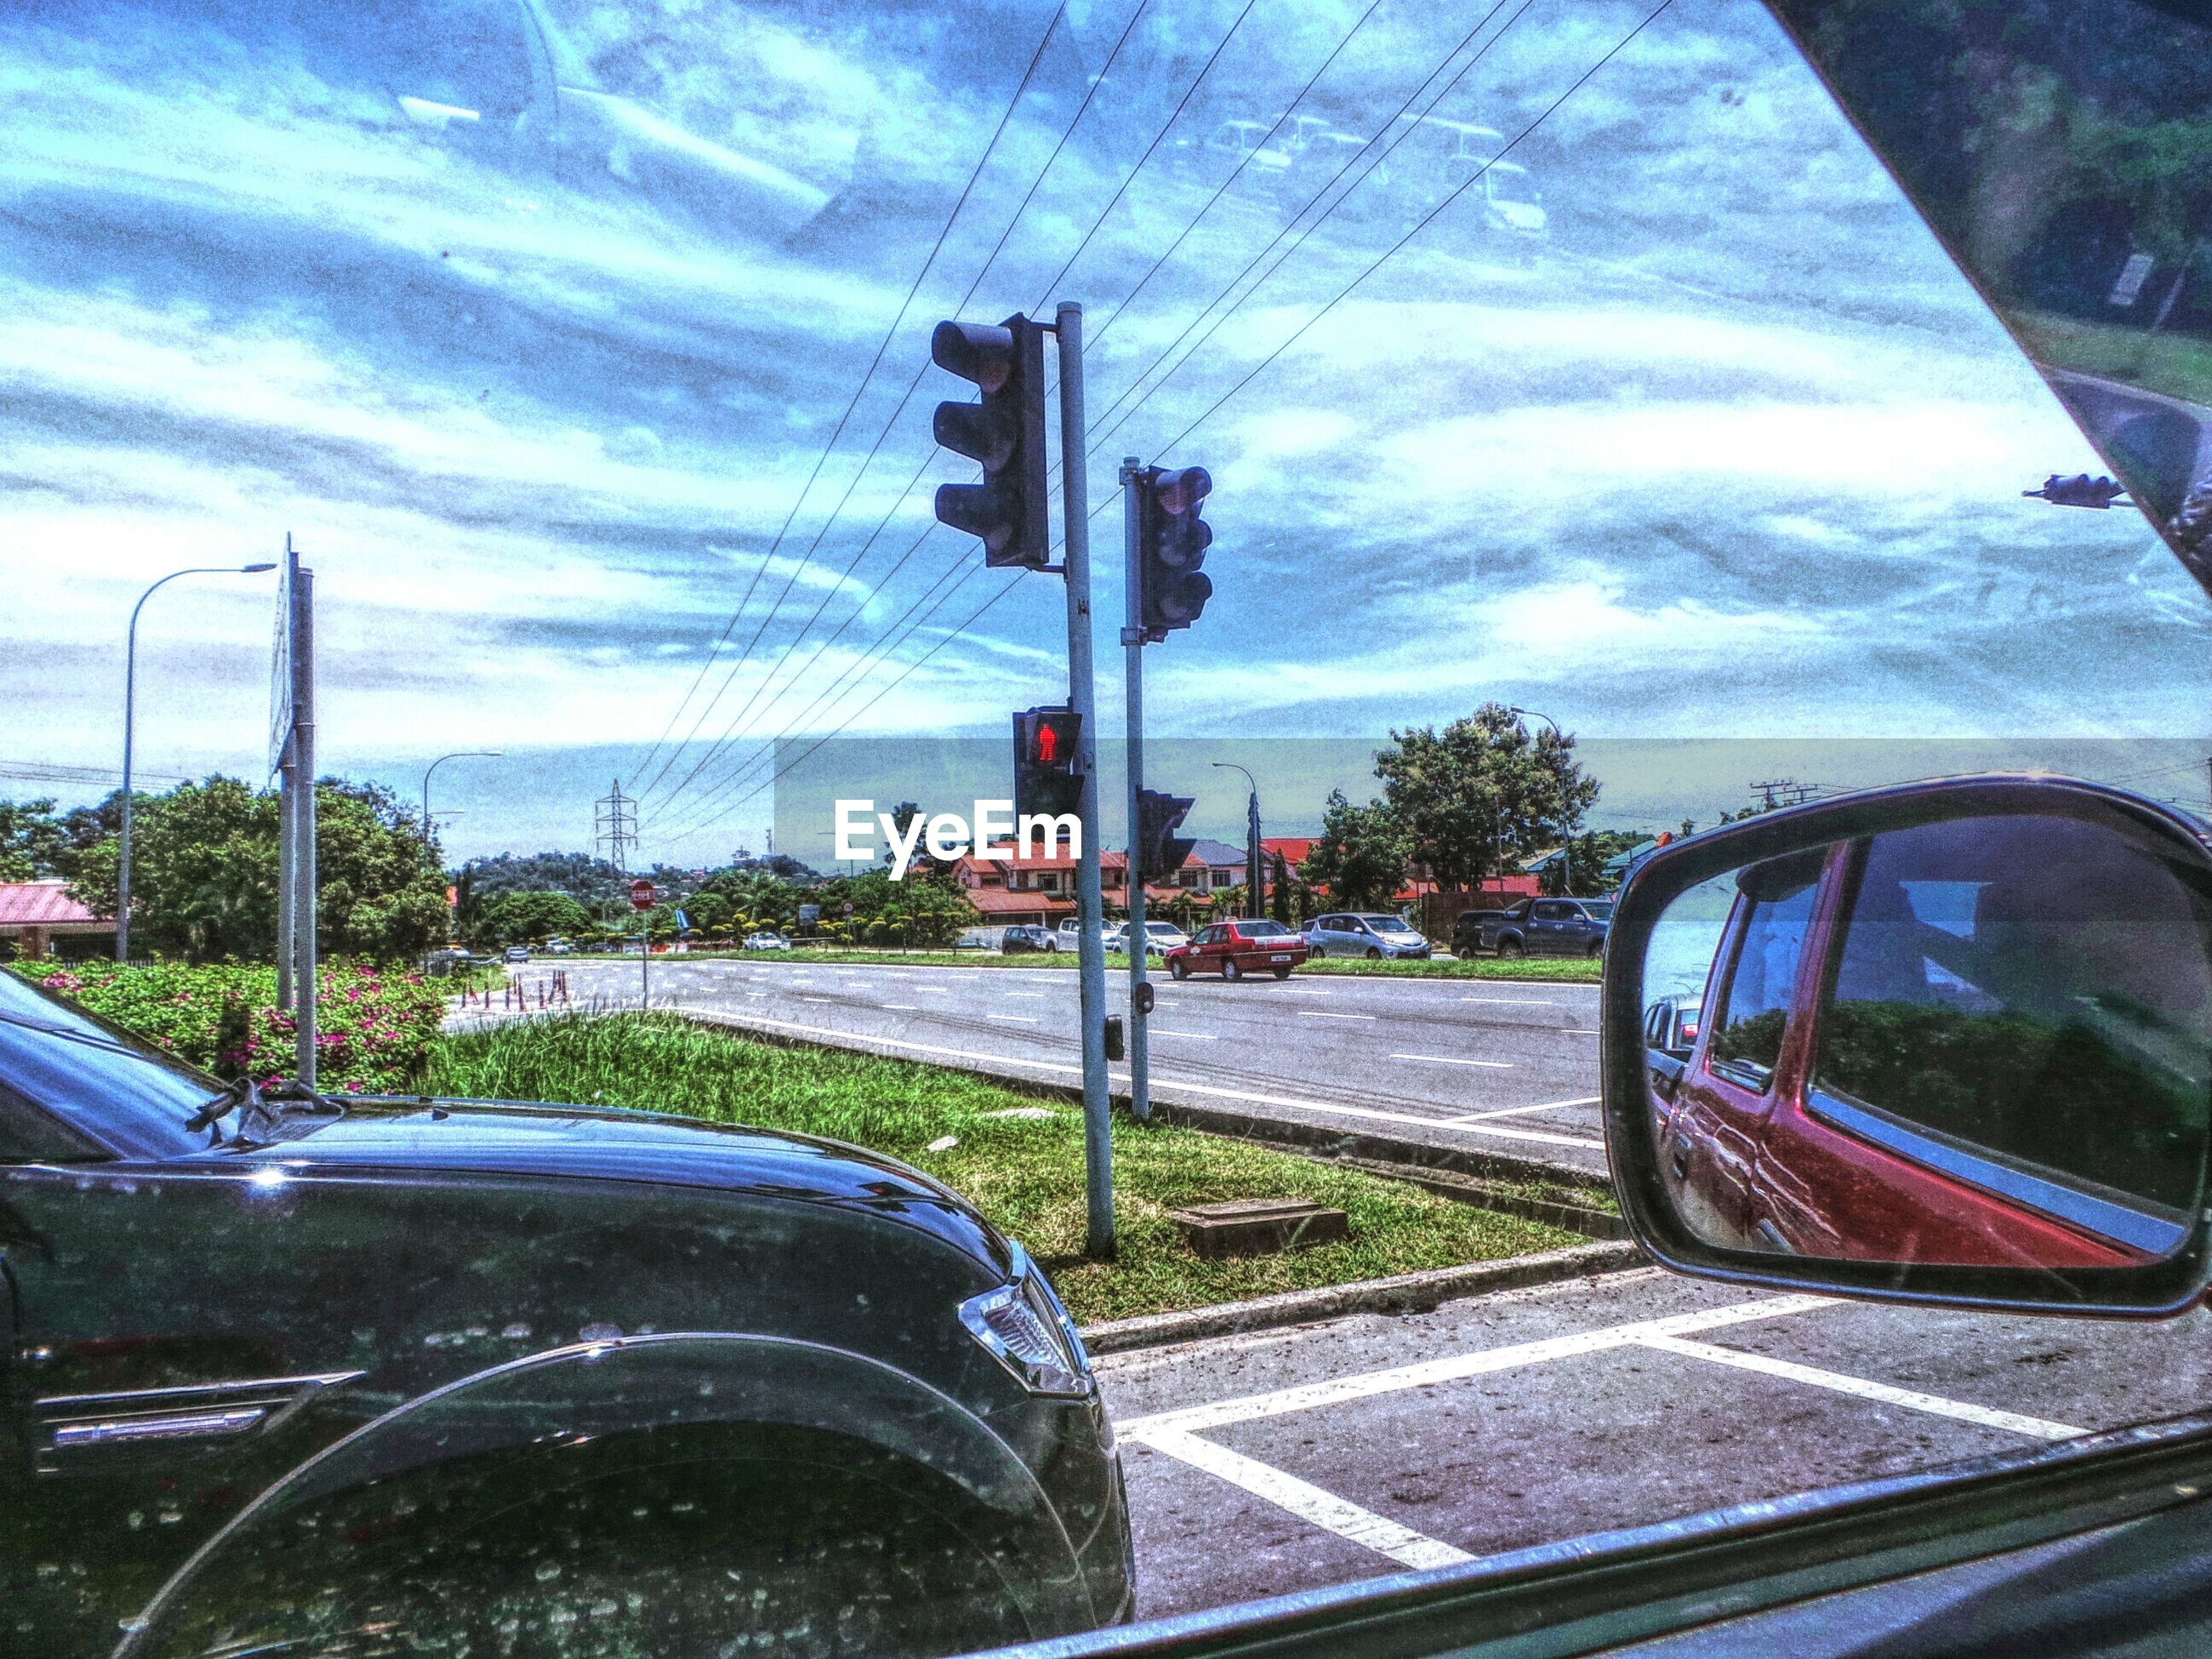 transportation, land vehicle, mode of transport, car, road, sky, tree, street, cloud - sky, road marking, blue, glass - material, cloud, day, sunlight, travel, vehicle interior, no people, windshield, parking